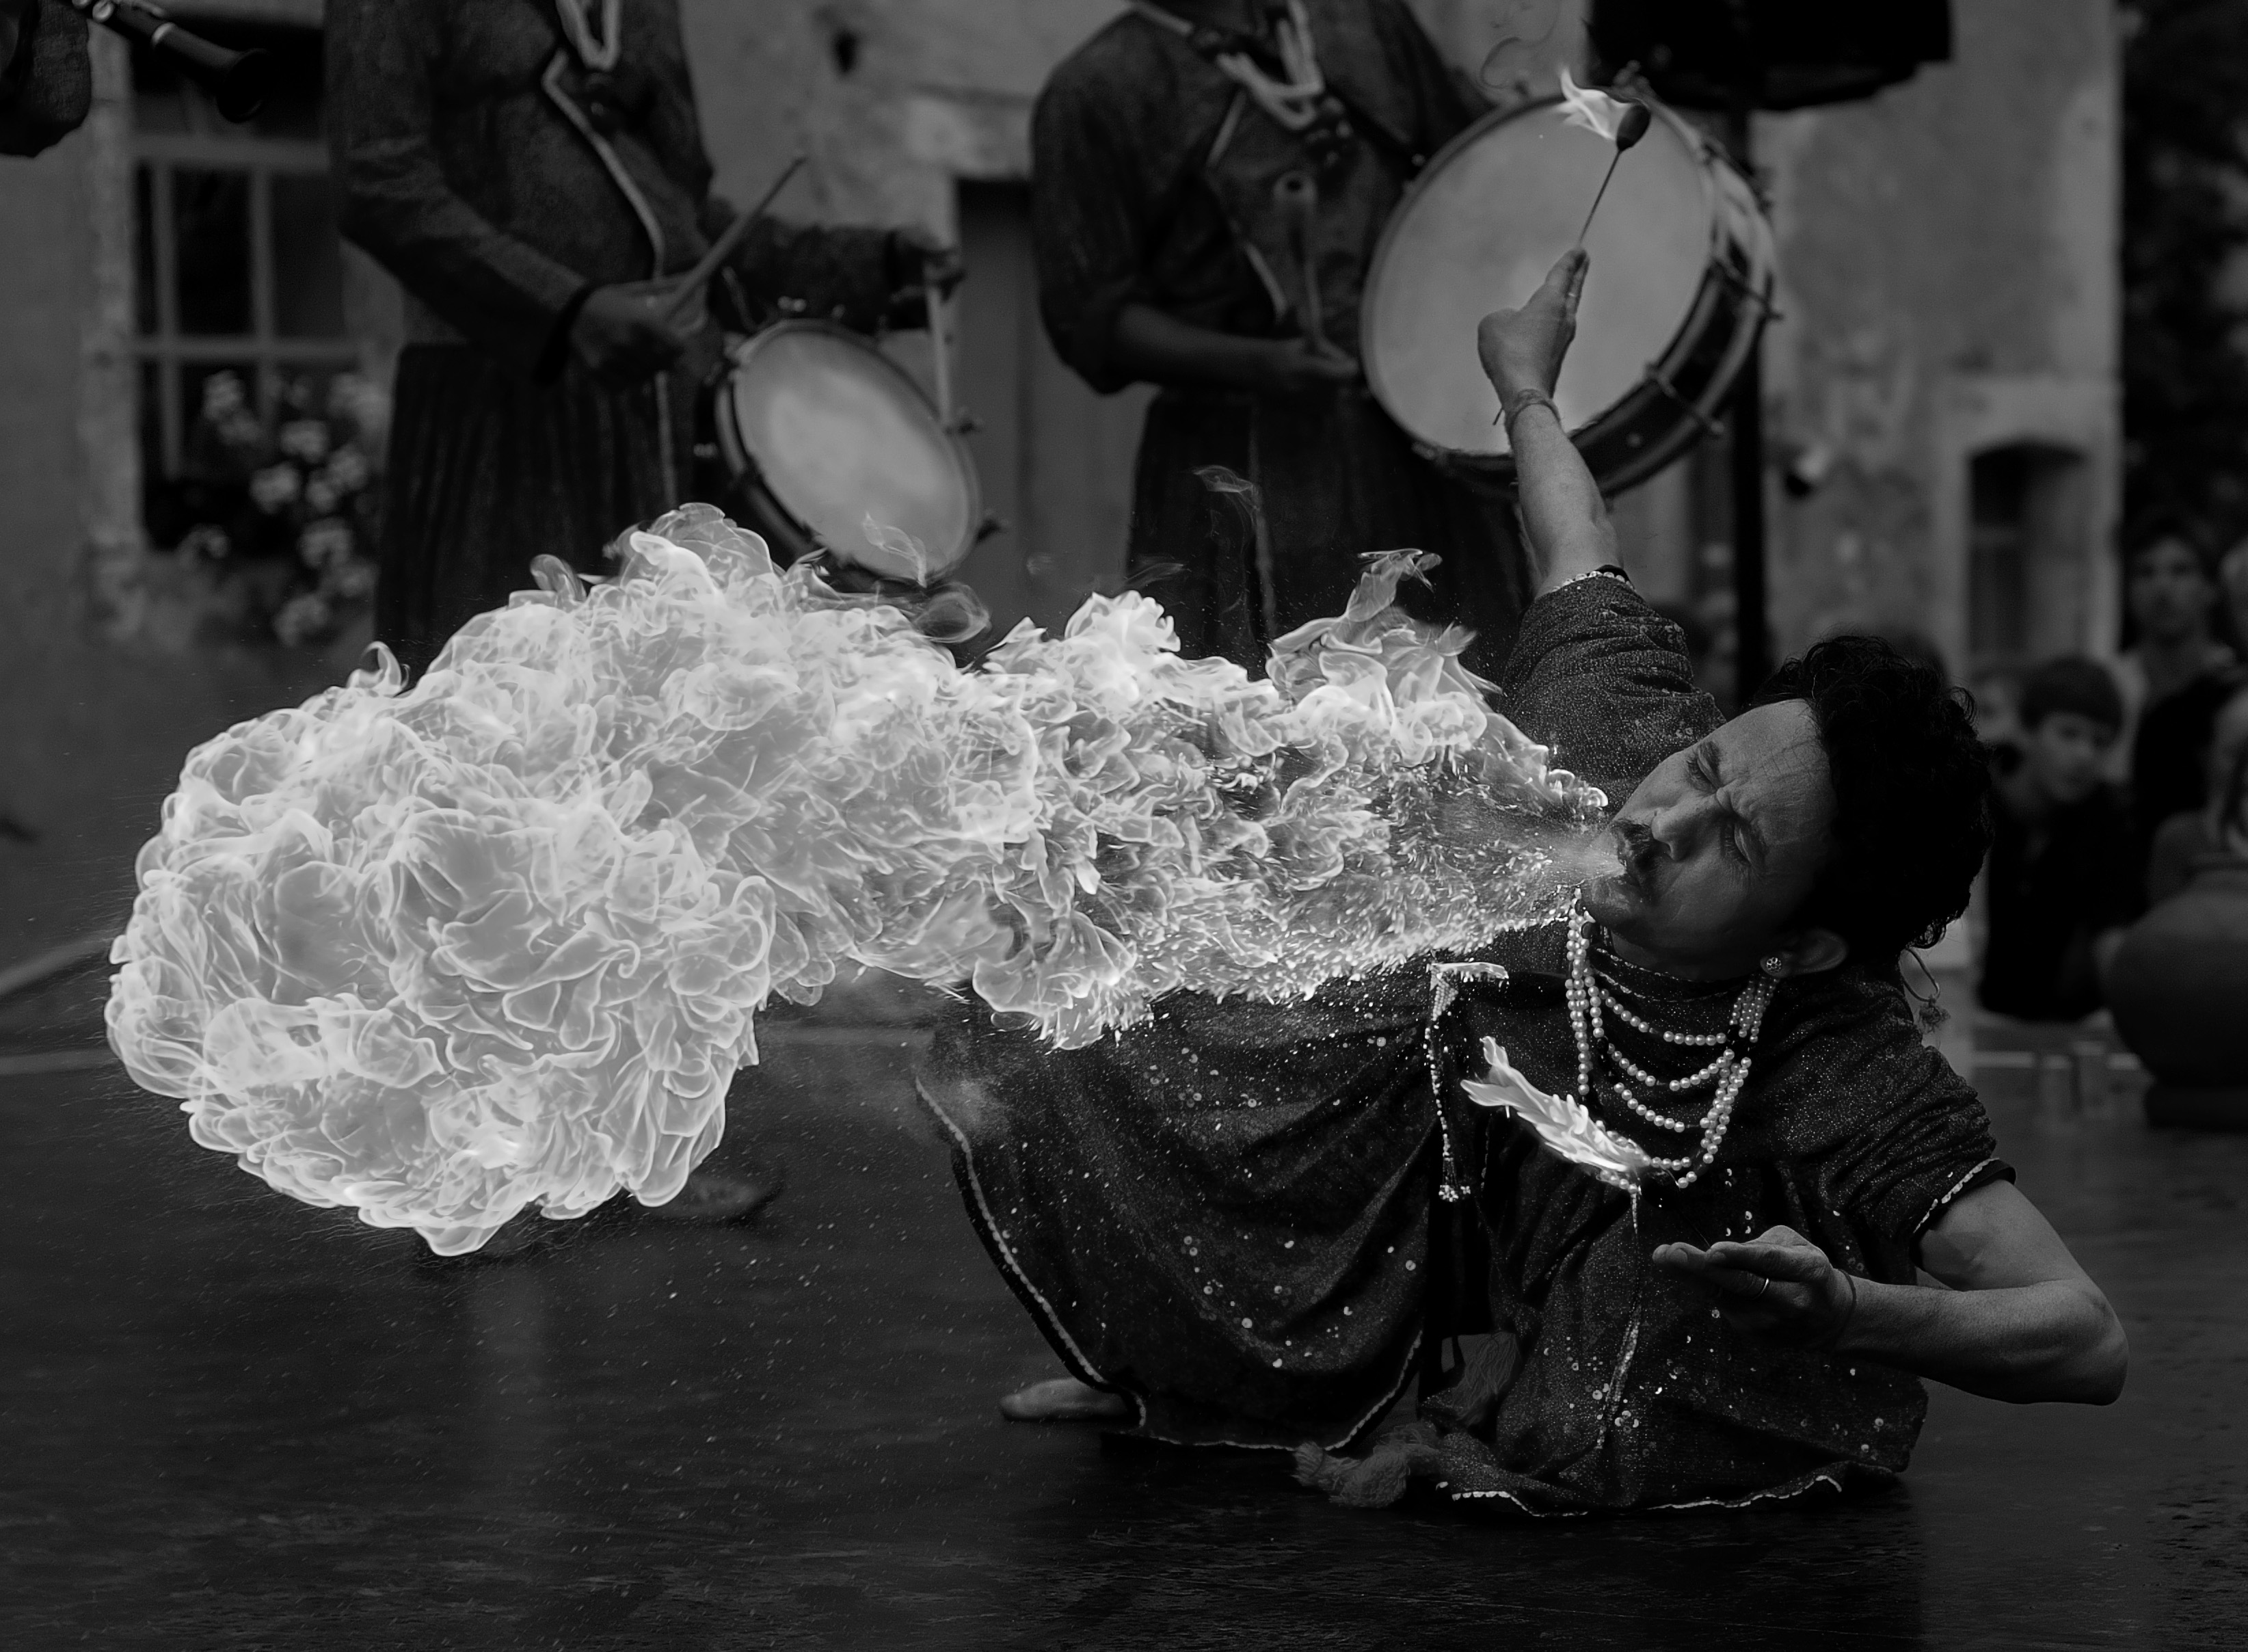 File:Fire-breather mean(R,G,B) I.jpg - Wikimedia Commons